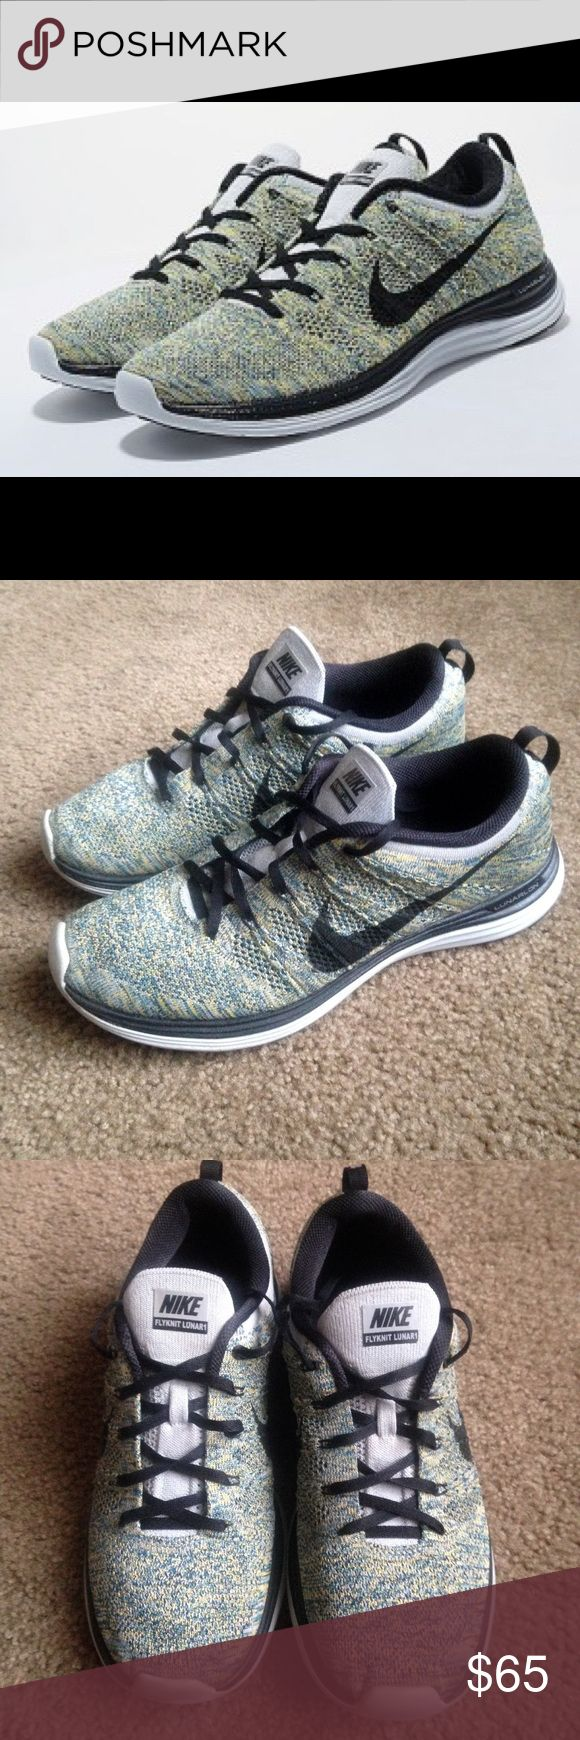 Mens Size 9.5 Nike Flyknit Lunar 1 Shoes And excellent preowned condition Mens Size 9.5 Nike Flyknit Lunar 1 Shoes have been worn but still has TONS of life left. Perfect for running or casual use Nike Shoes